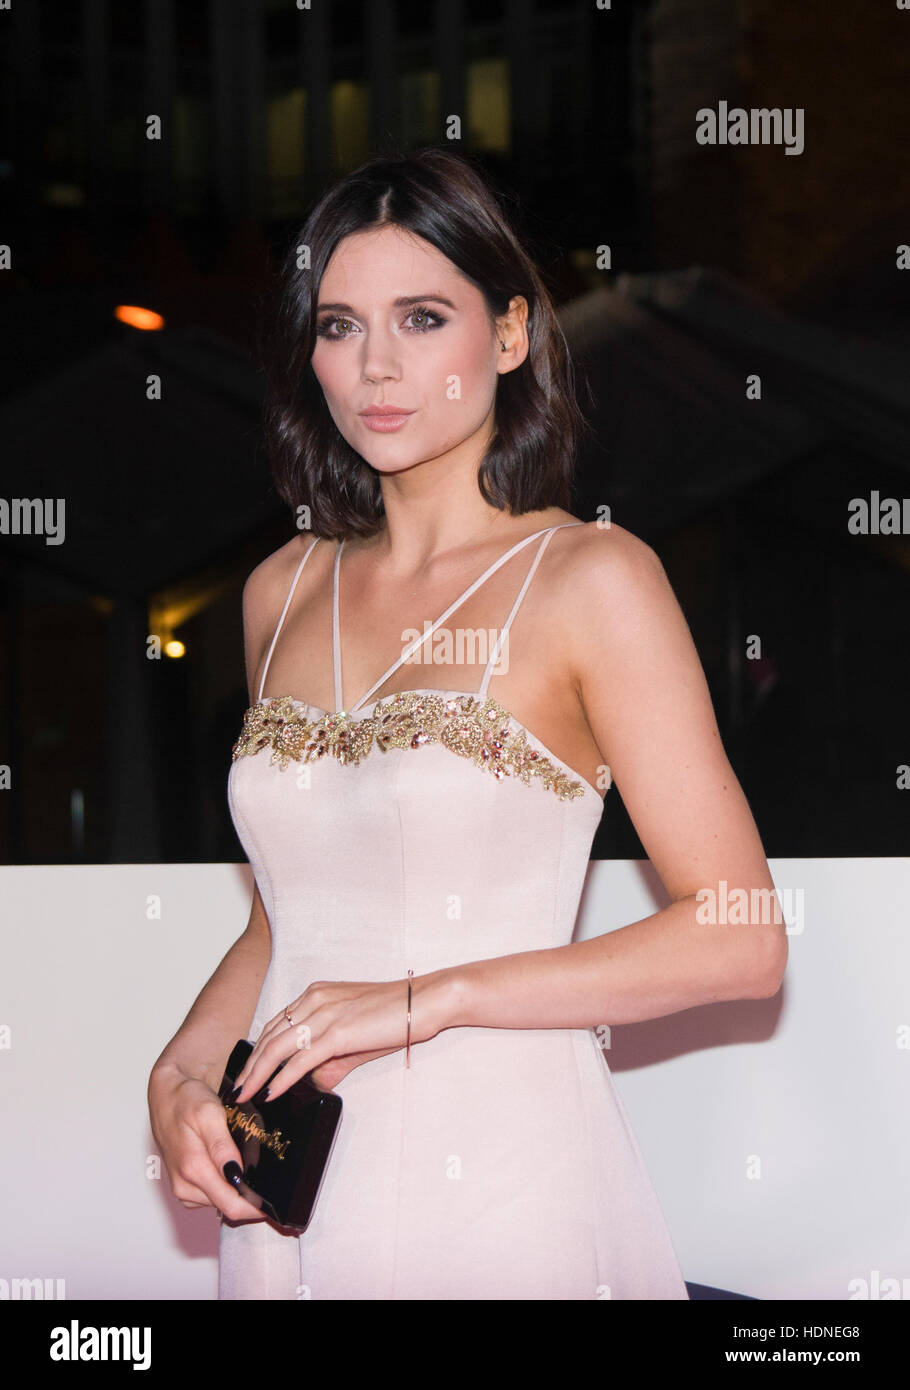 London, UK. 14th Dec, 2016. Lilah Parsons in Guild Hall on 14th December 2016, London, England. Credit:  The Photo - Stock Image